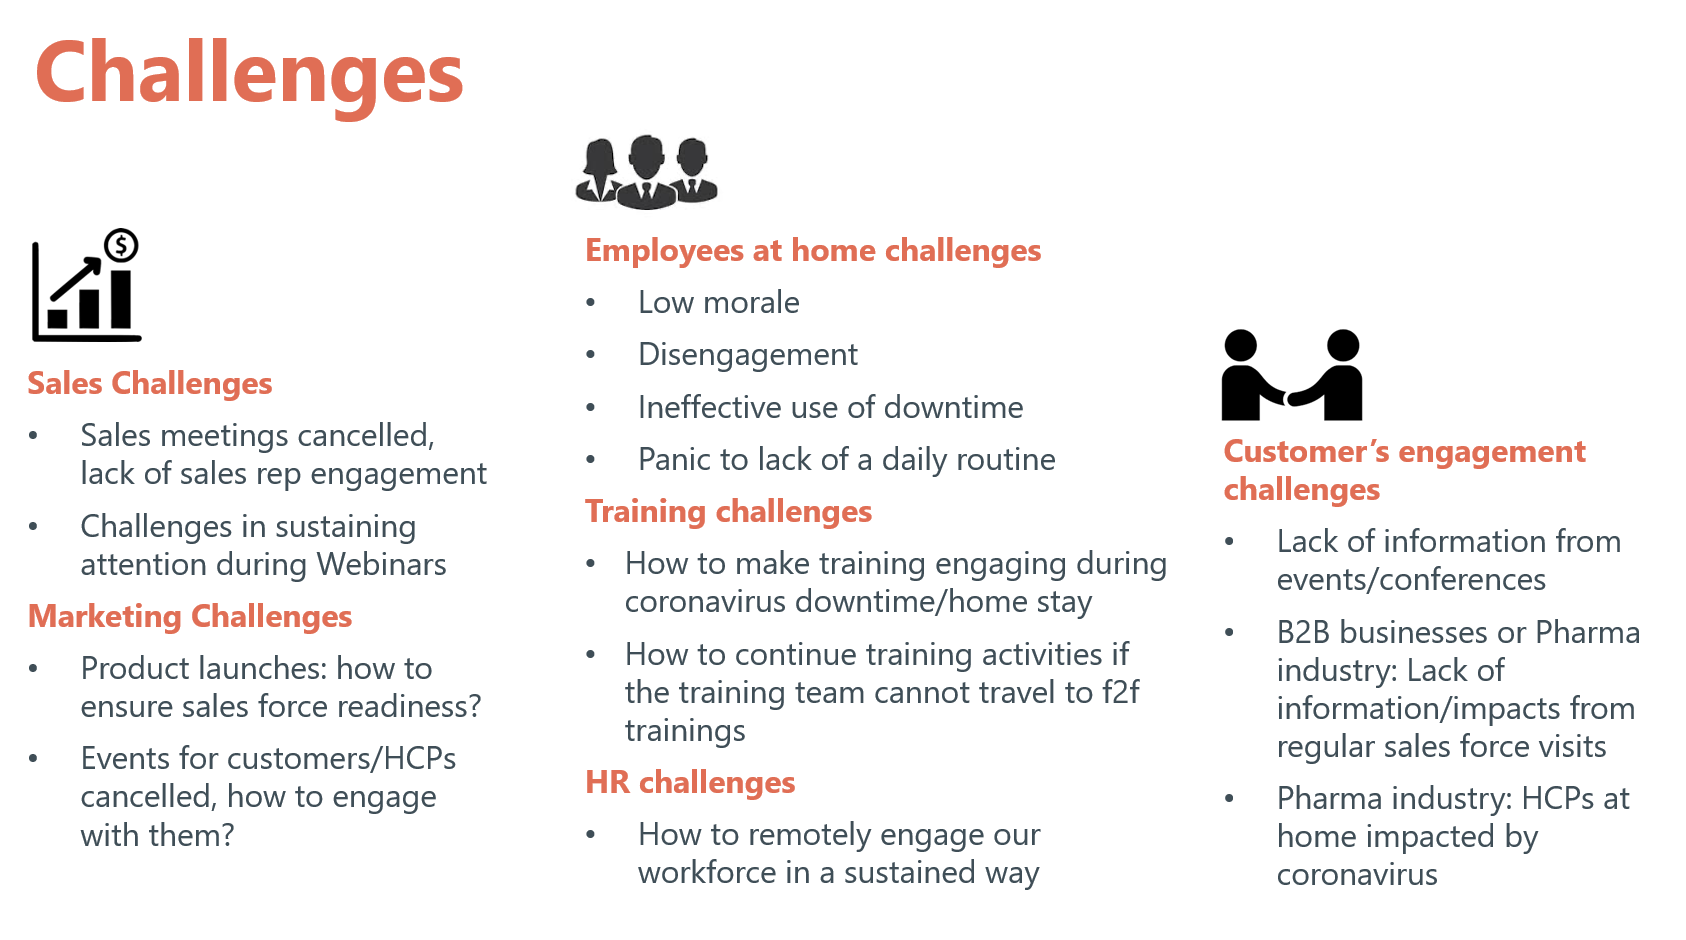 COVID-19 - sales - remote - marketing - customers - Human - Resources - challenges - knowledge